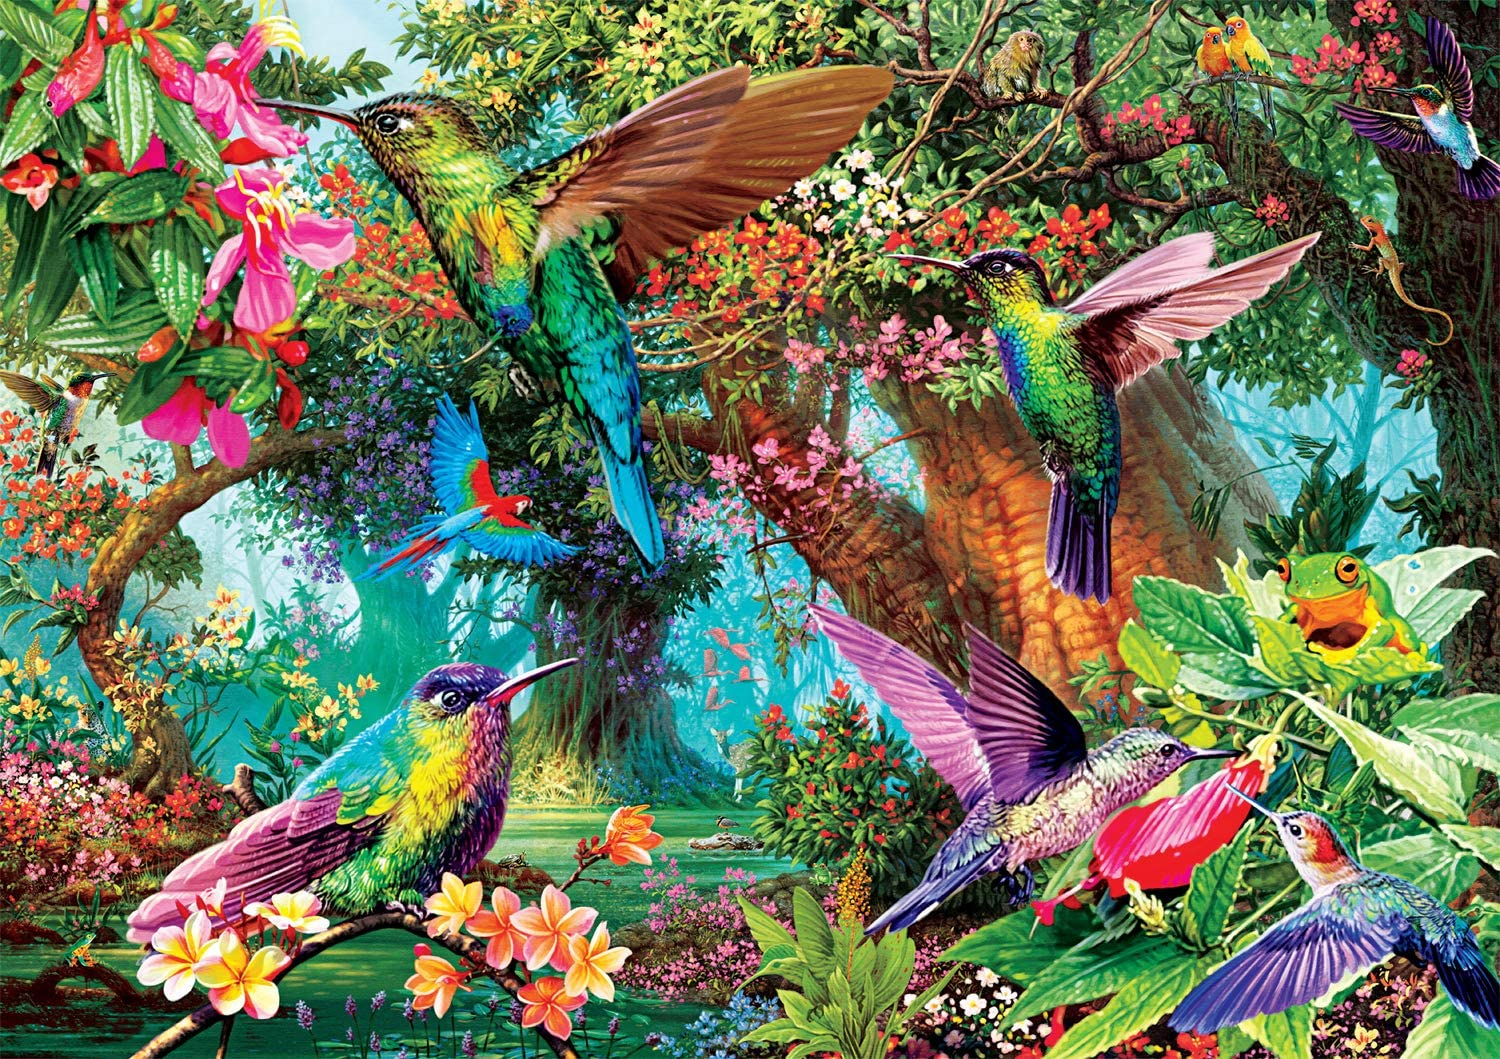 antkondnm Hummingbird Butterfly Jigsaw Puzzles 1000 Pieces for Adults Fun Game Intellectual Decompressing Interesting Puzzle